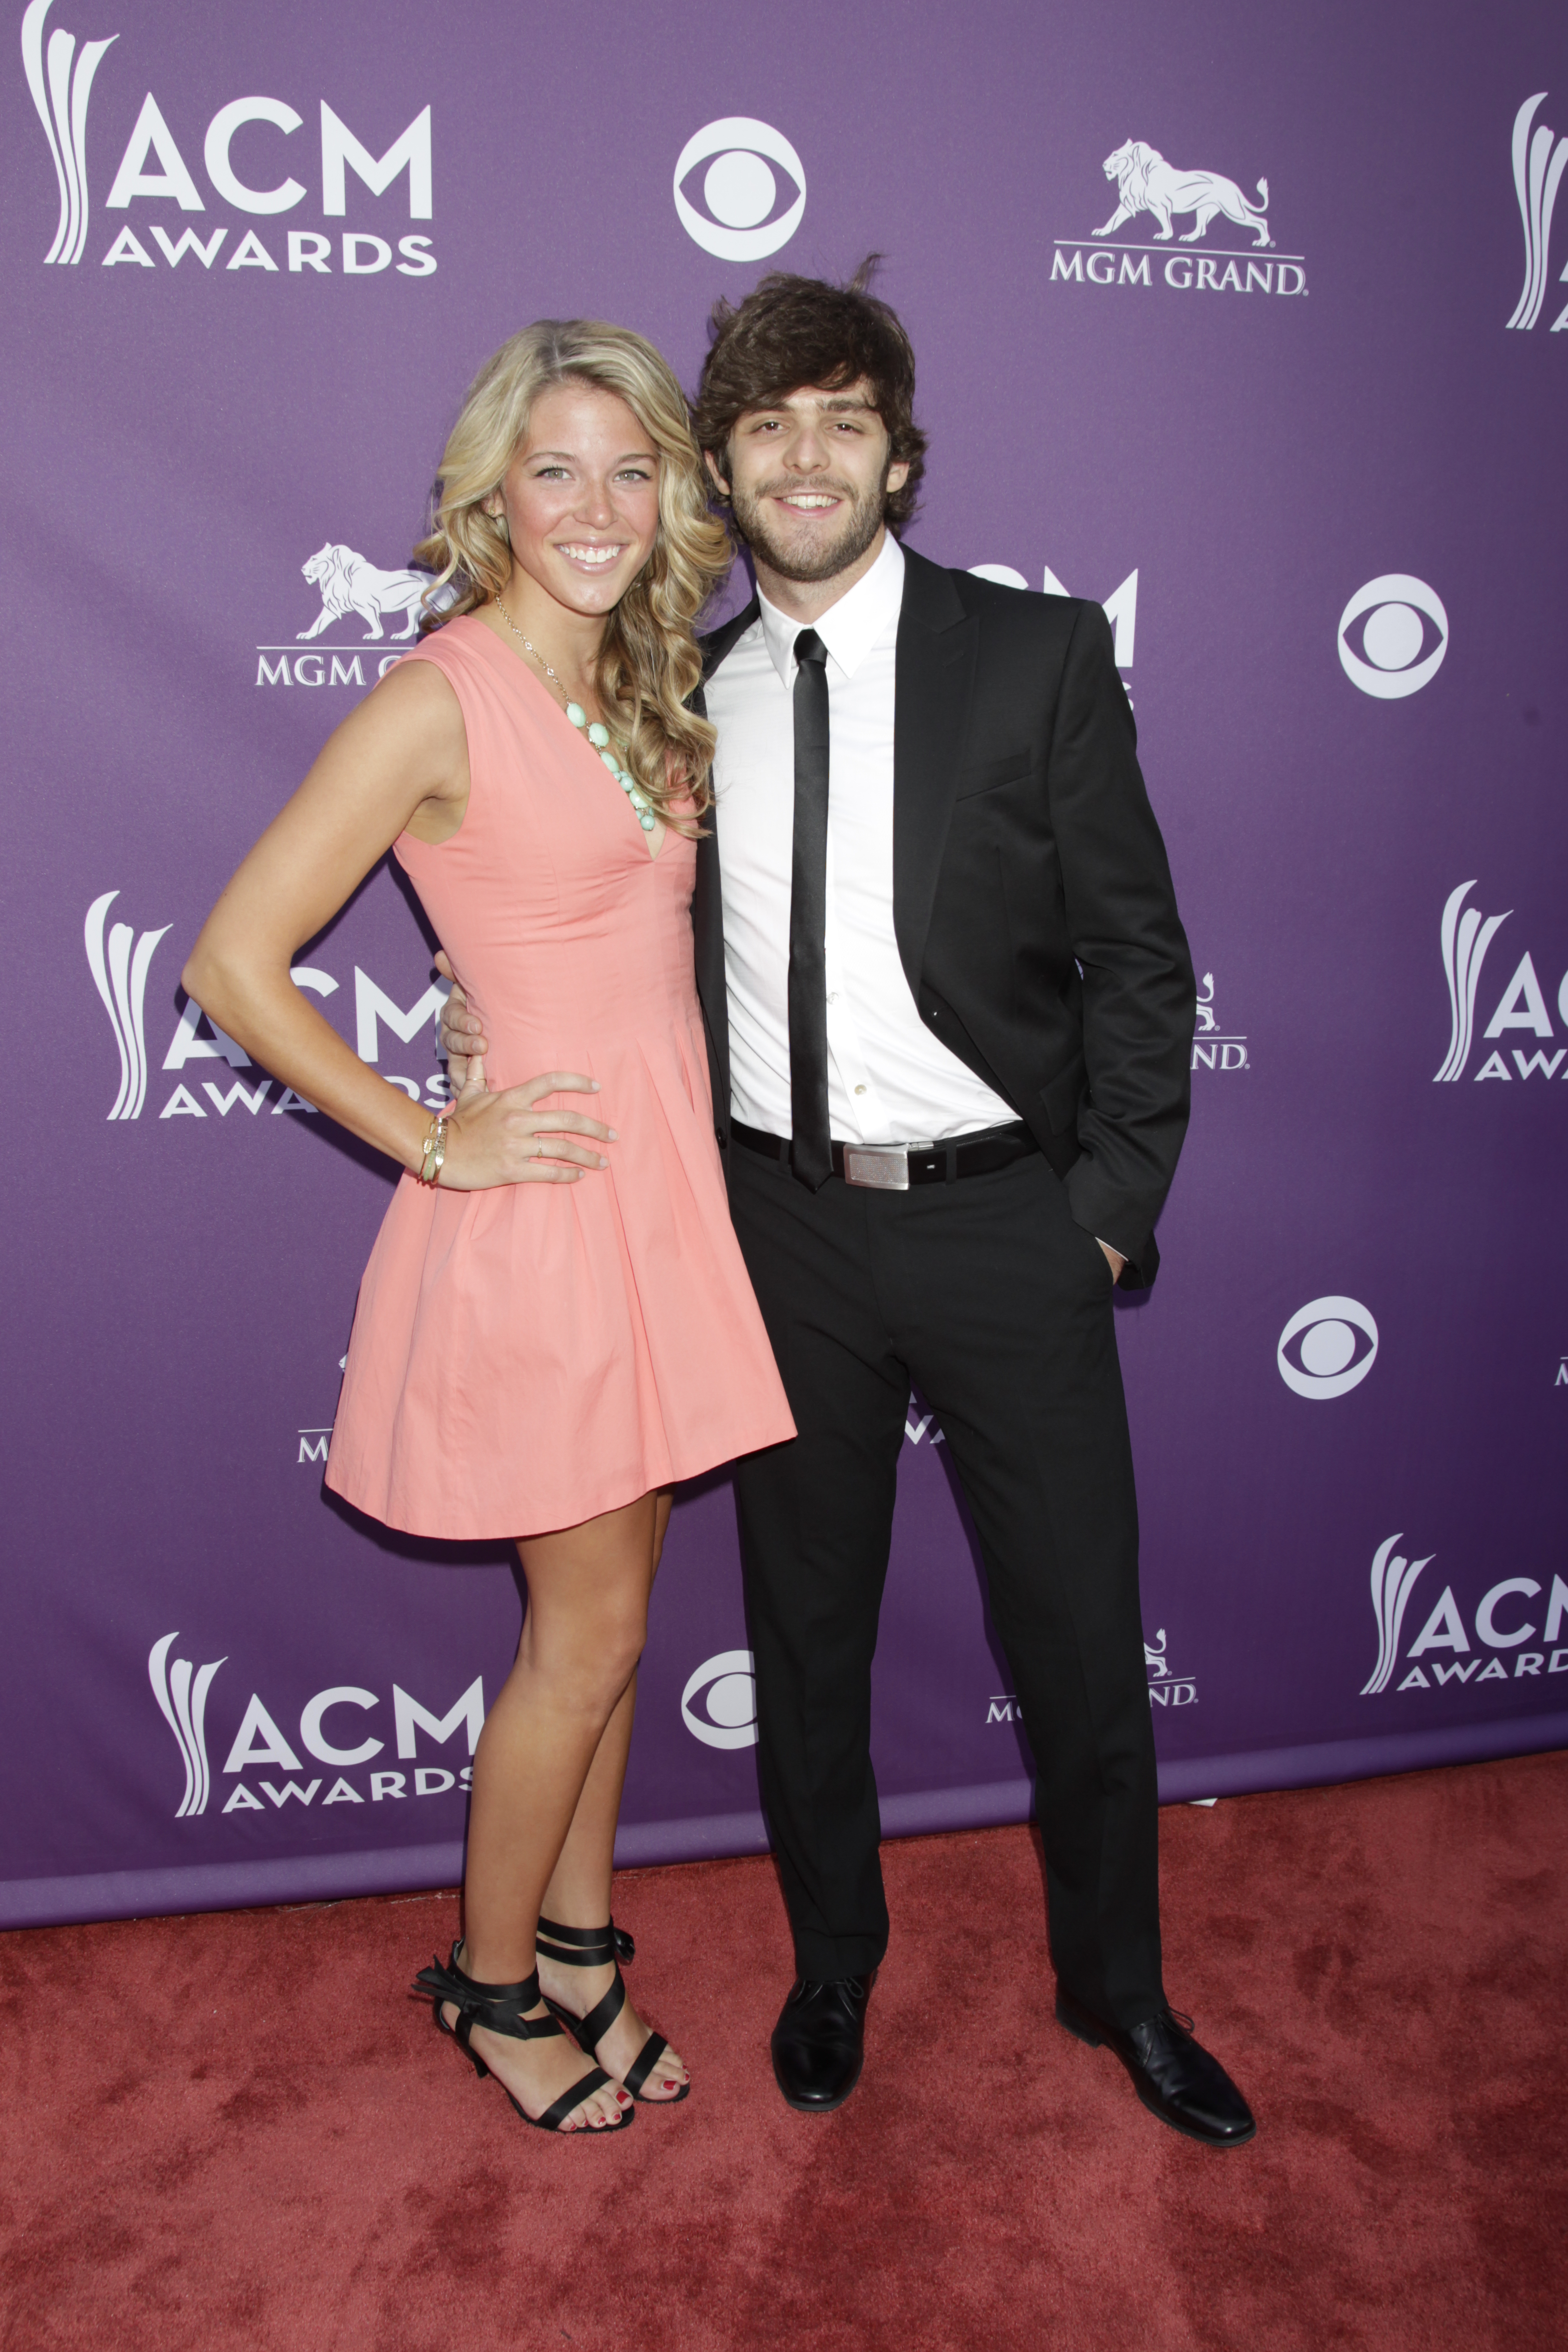 Lauren Akins and musician Thomas Rhett - 48th ACM Awards